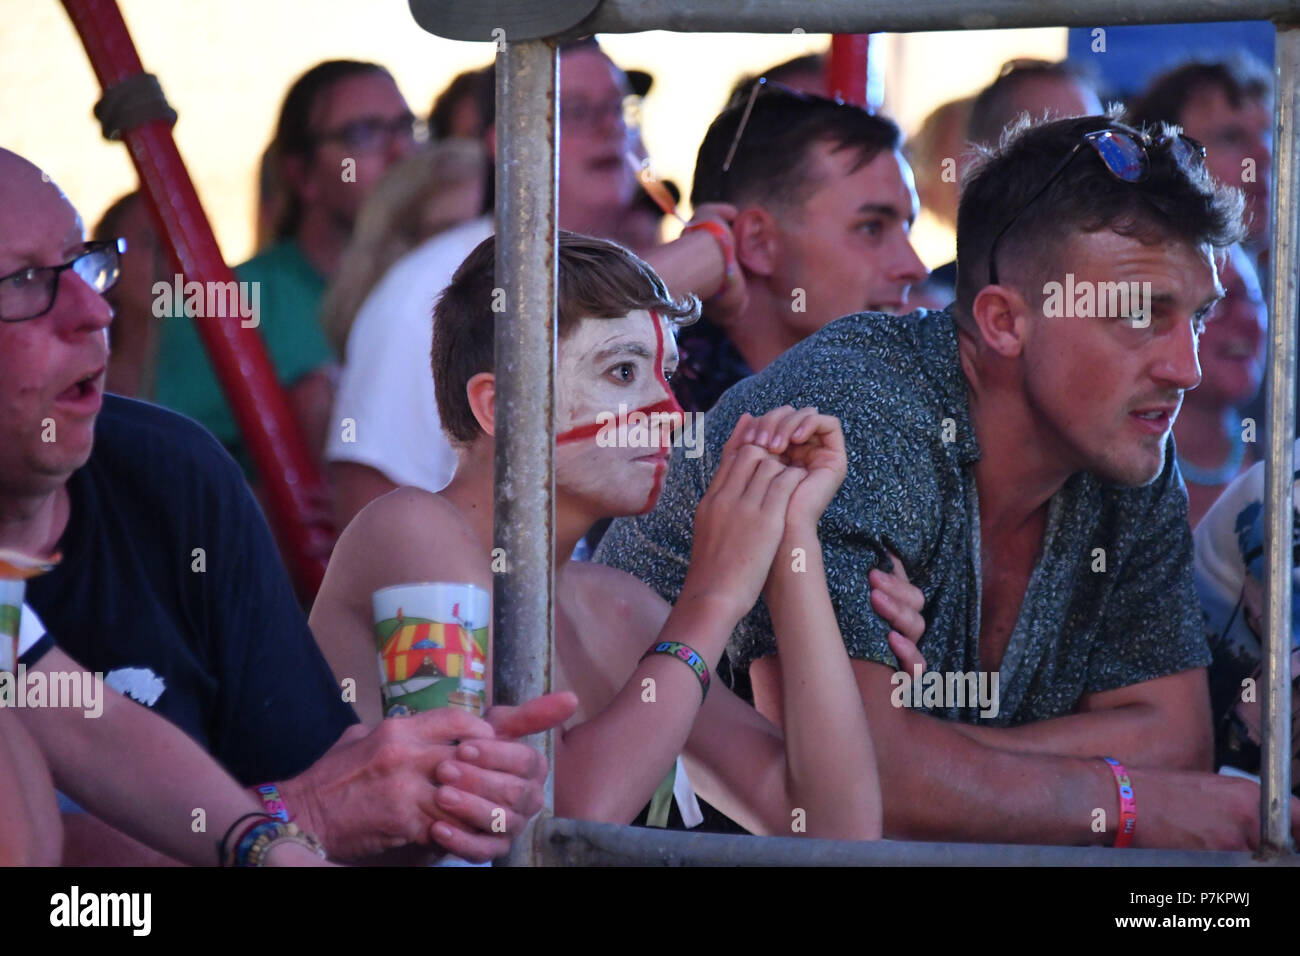 Wadebridge, Cornwall, UK. 7th July 2018. The organisers of the annual Rock Oyster Festival had the foresight to setup a screen for the England Football game. Seen here fans waiting the final moments, then the full time whistle. Credit: Simon Maycock/Alamy Live News - Stock Image